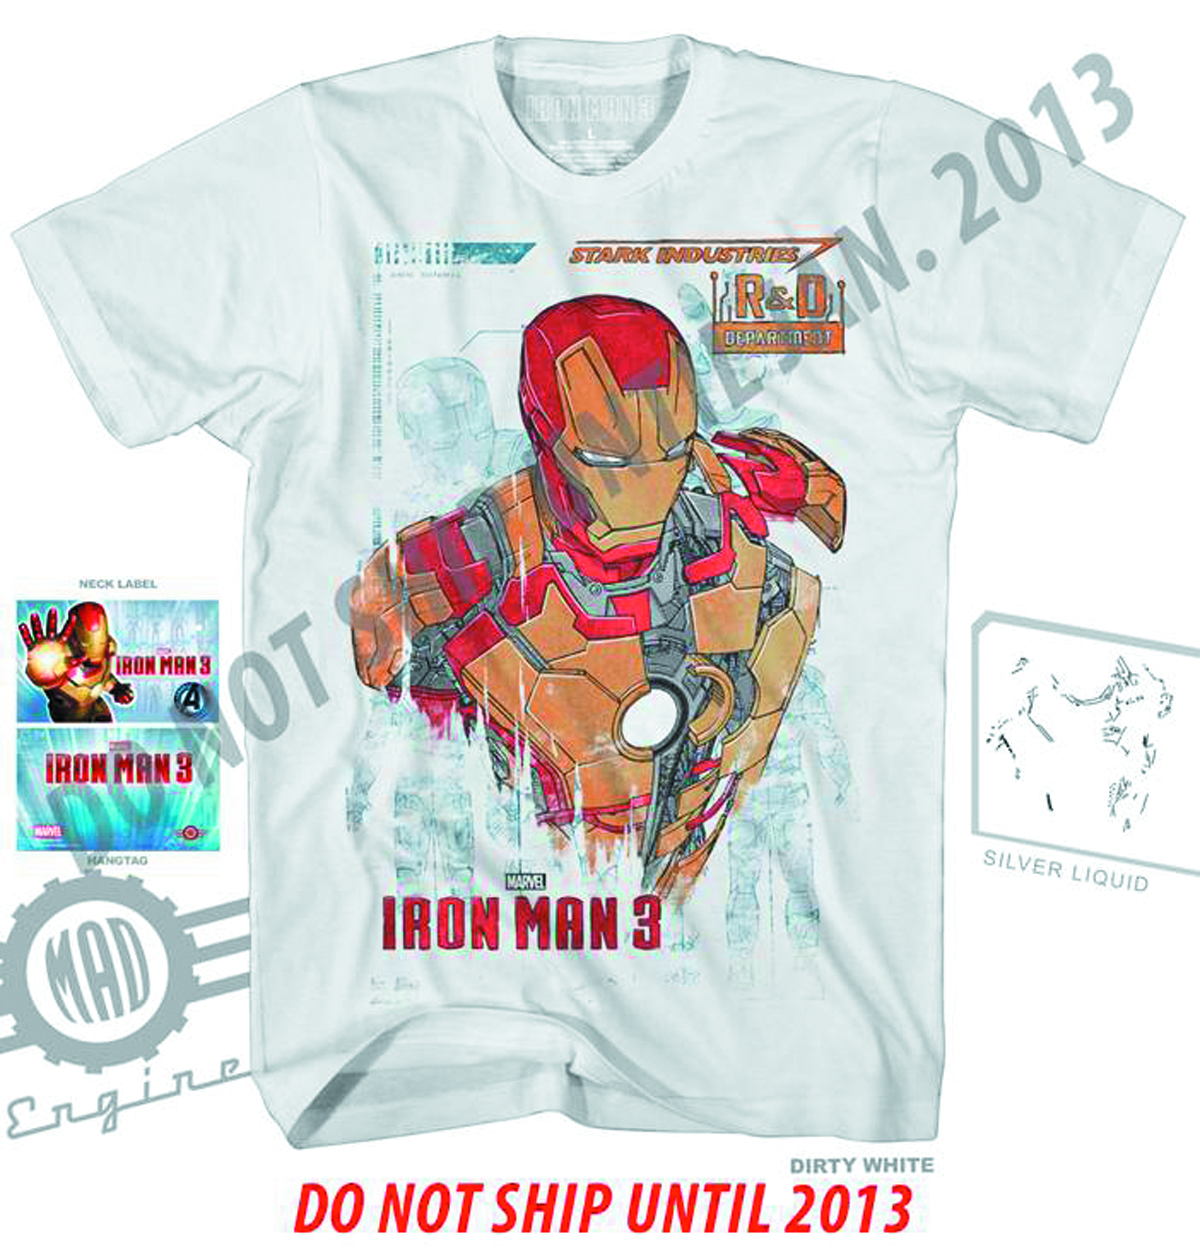 IRON MAN 3 R AND D-M DIRTY WHITE T/S XXL